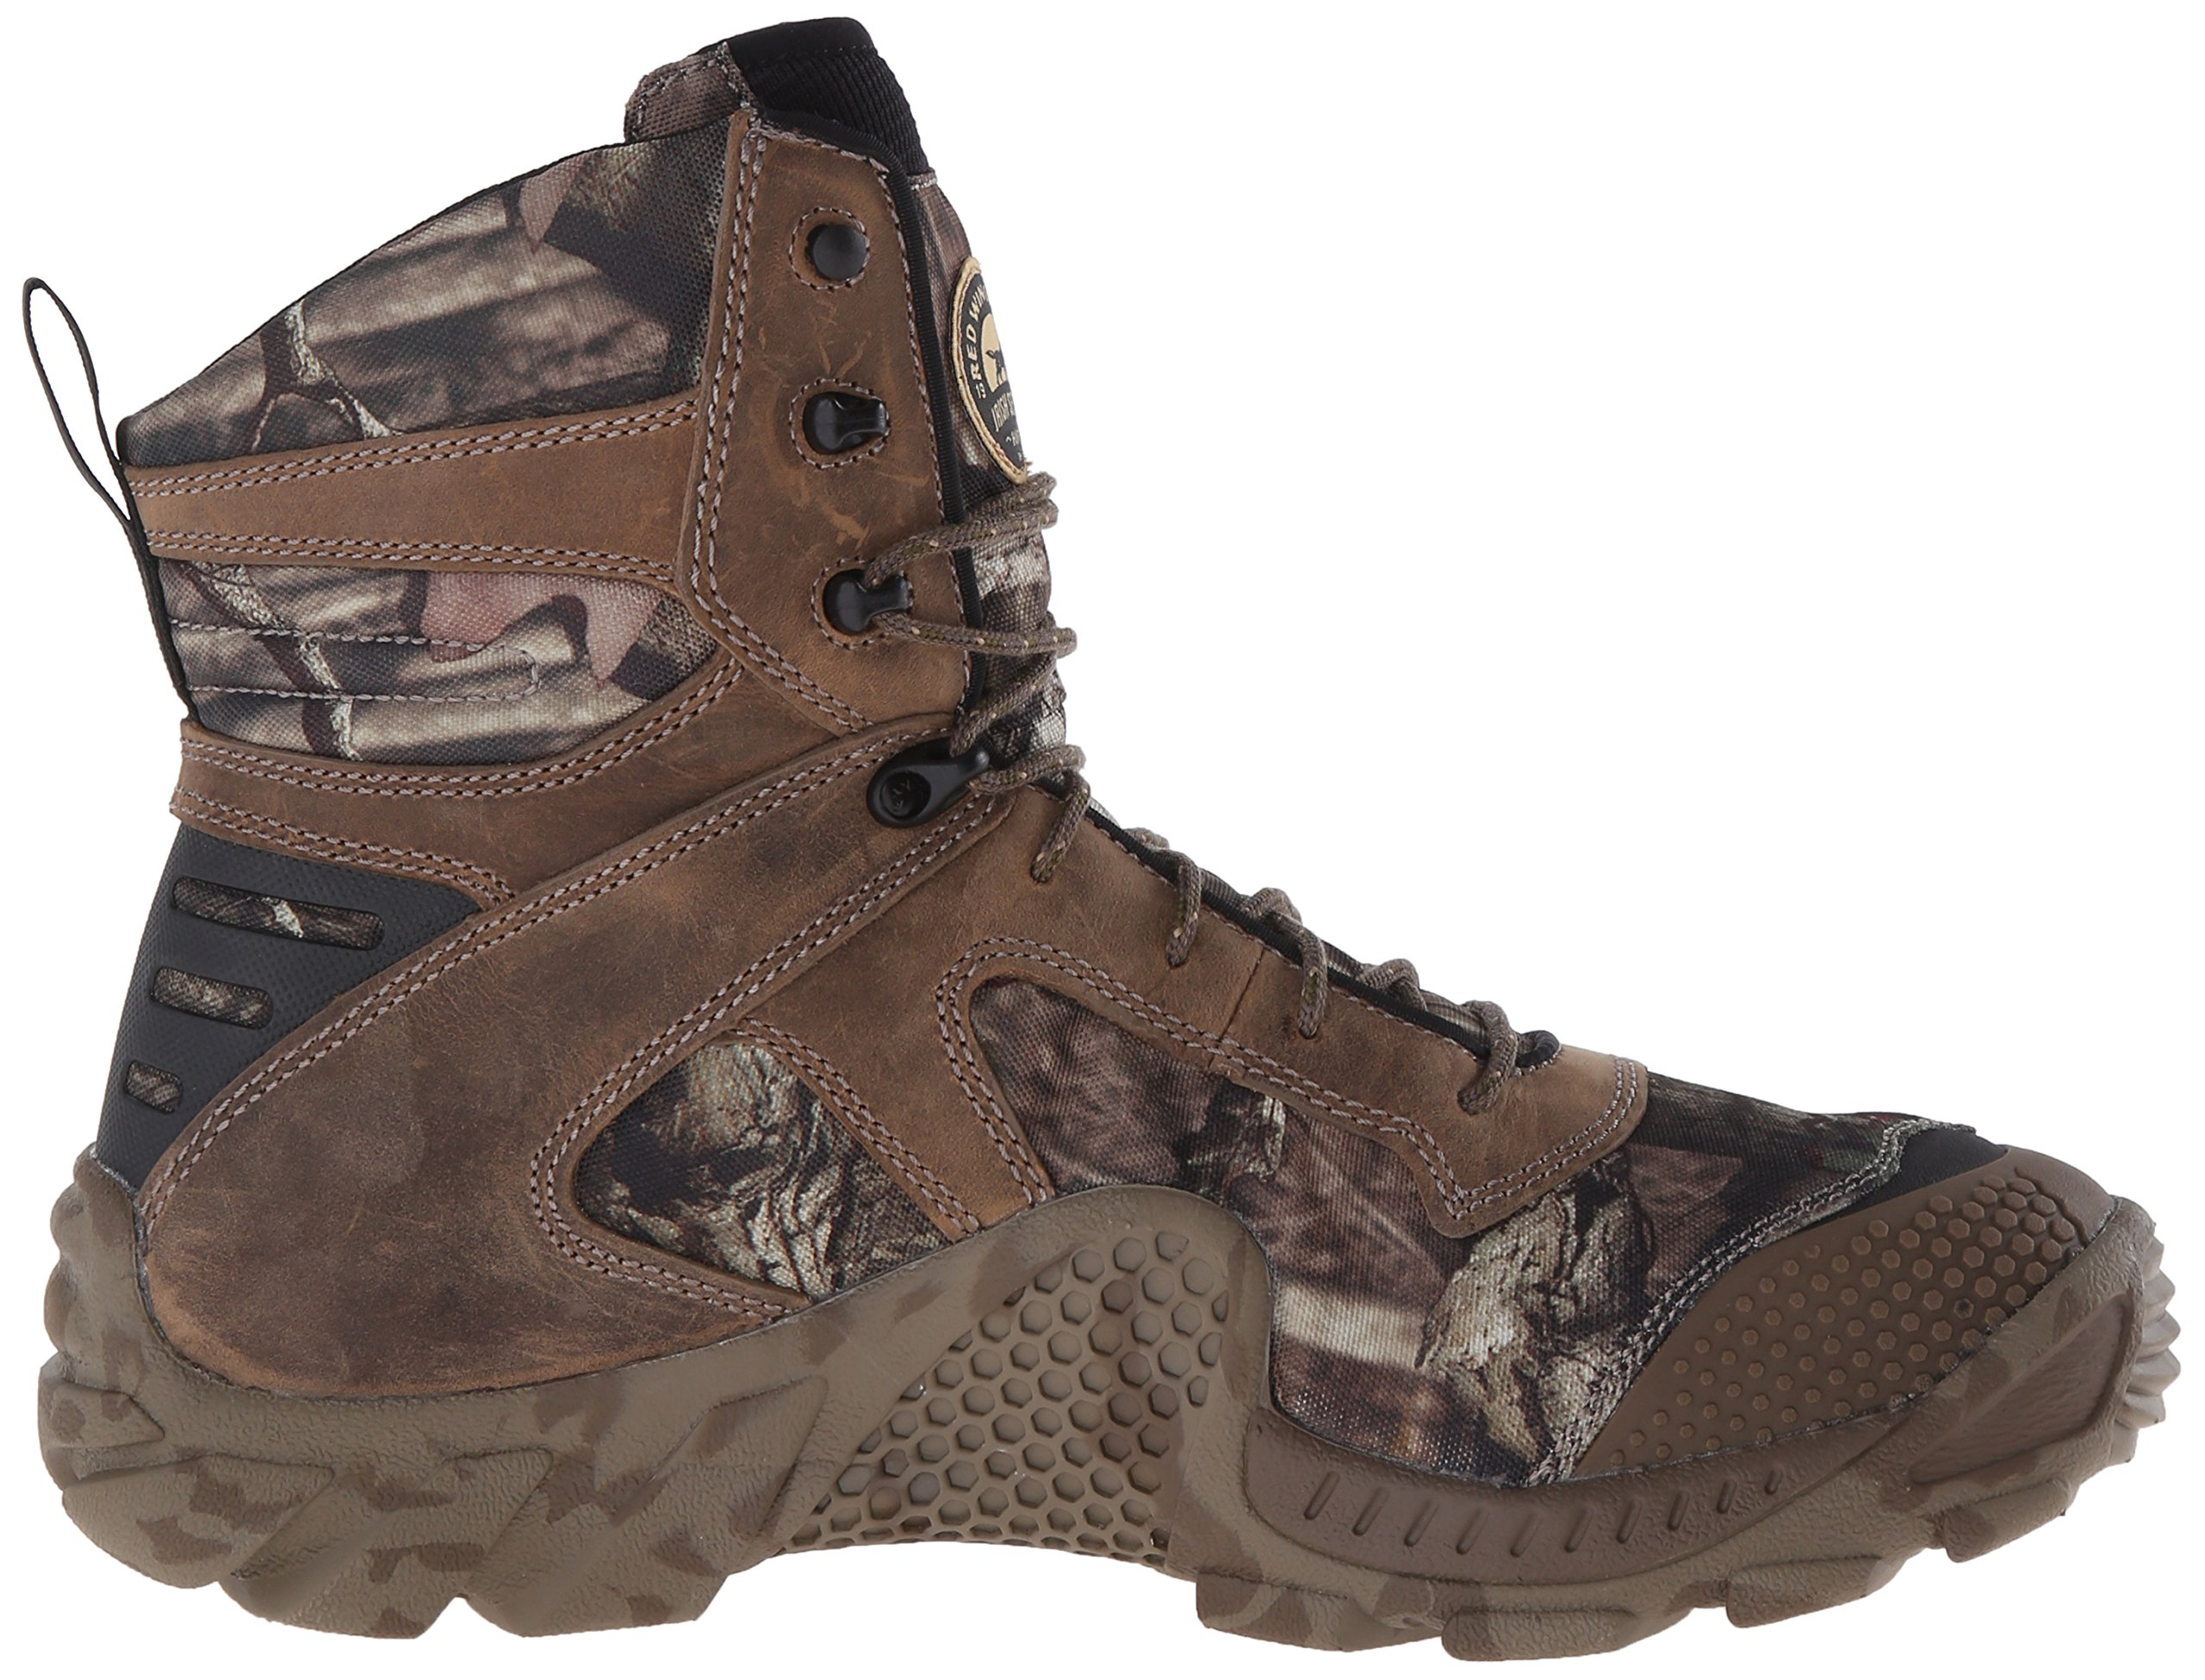 Irish Setter Men's 2868 Vaprtrek Waterproof 8'' Hunting Boot, Mossy Oak Break Up Infinity Camouflage,10 EE US by Irish Setter (Image #7)